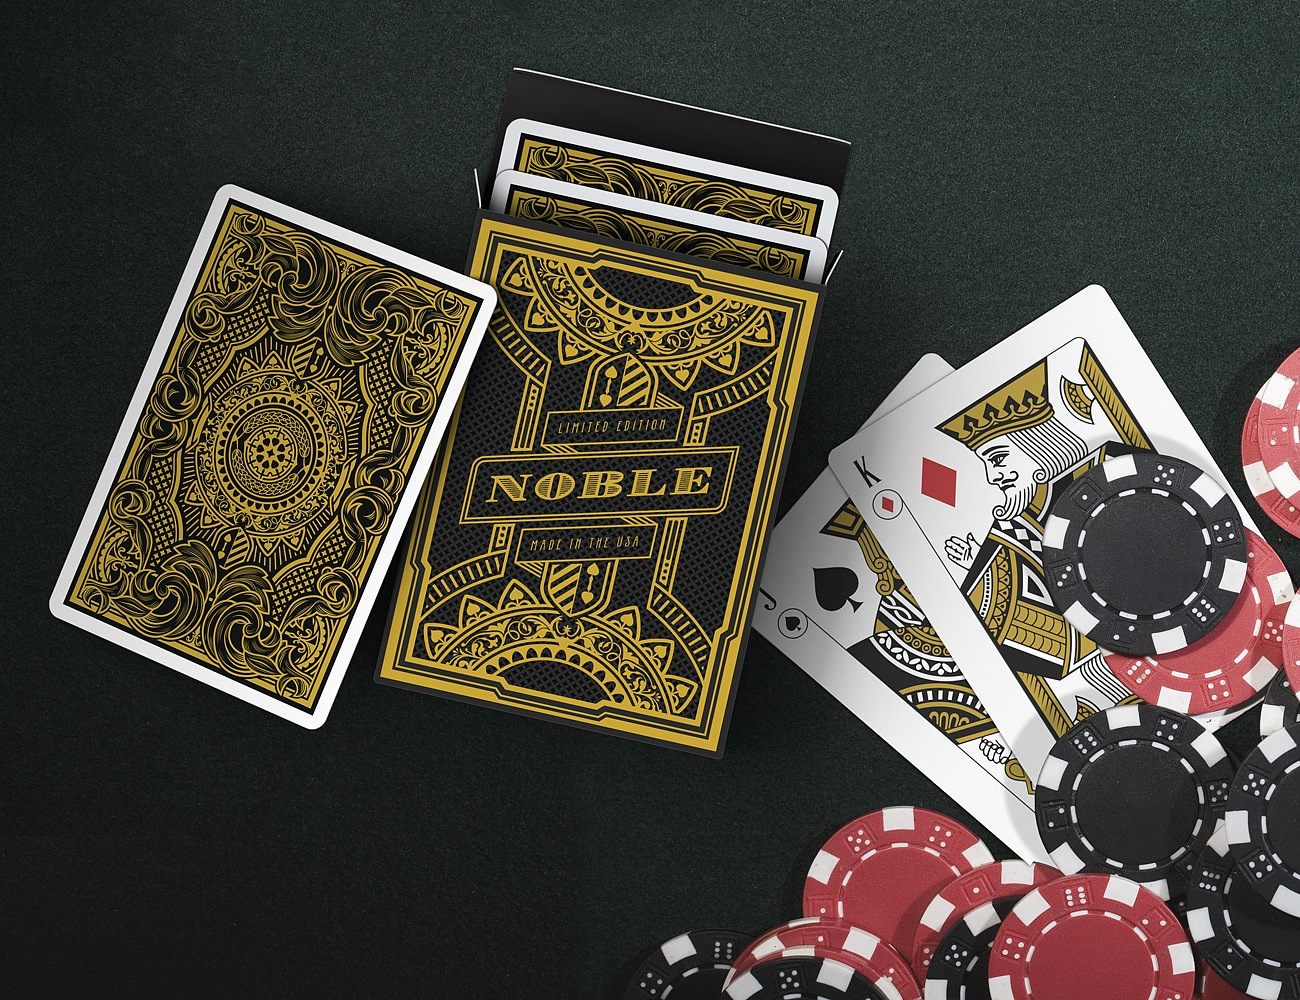 Noble+Deck+%26%238211%3B+Premium+Playing+Cards